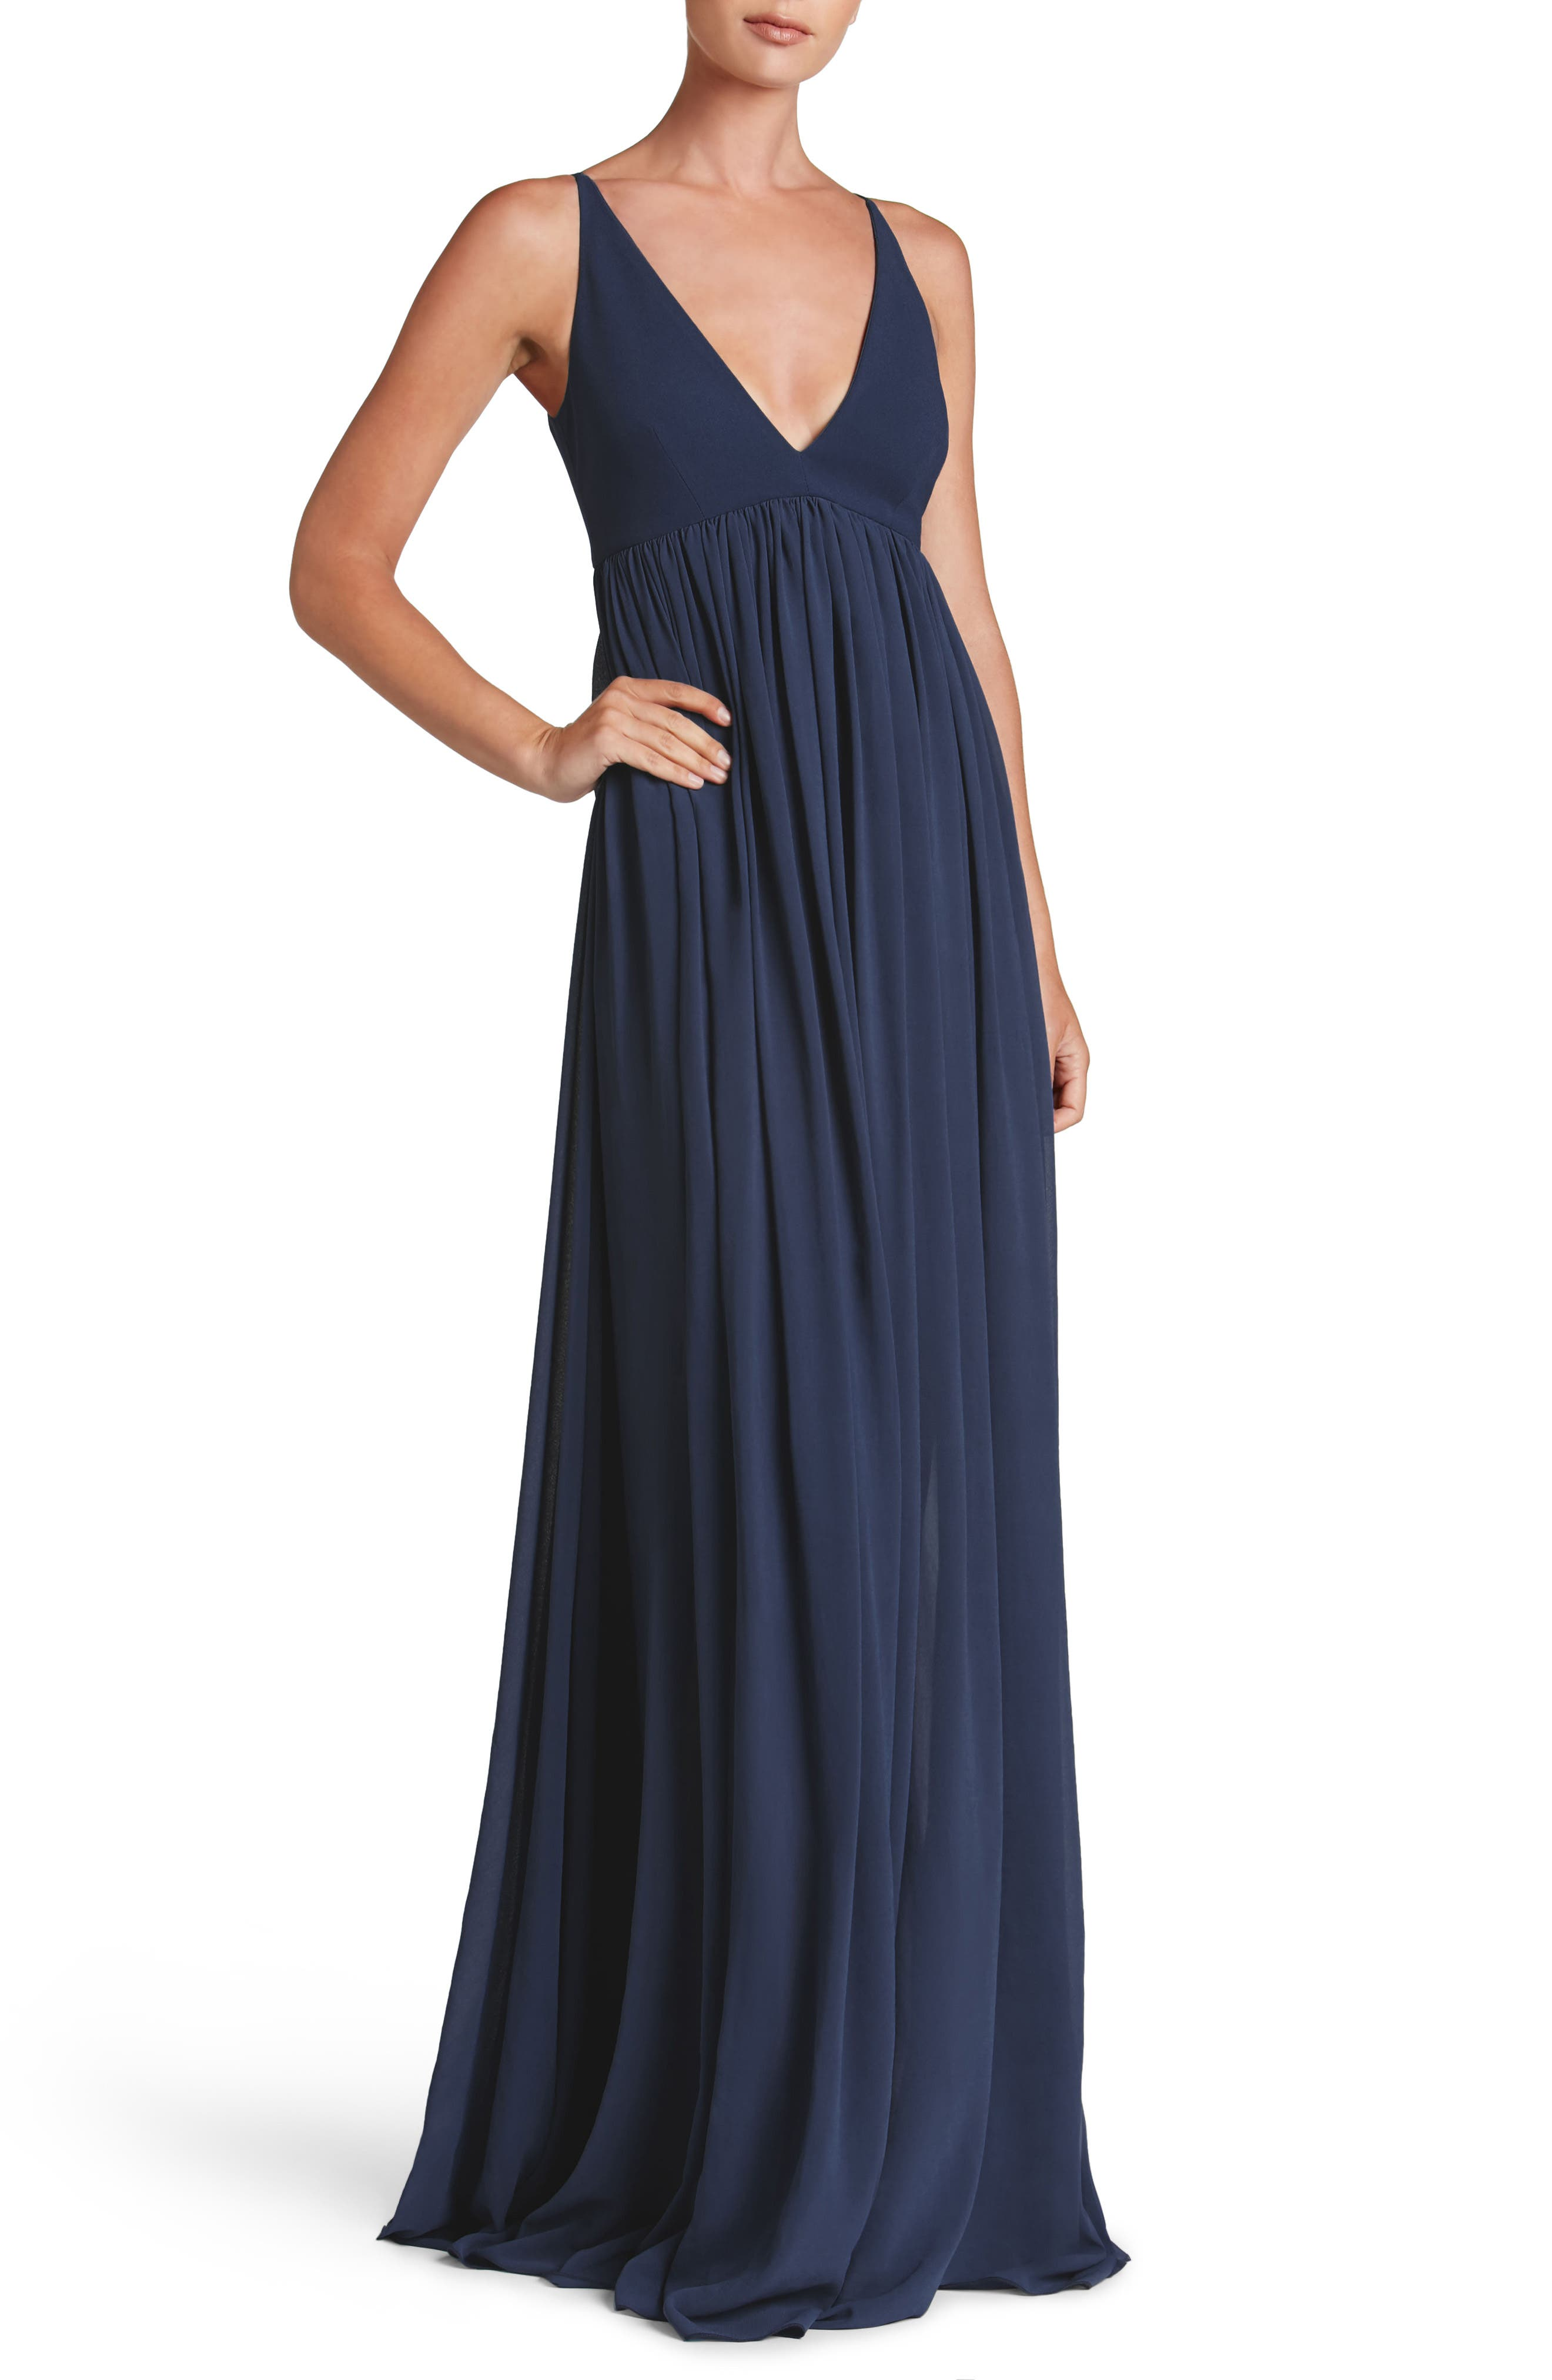 Phoebe Chiffon Gown,                             Main thumbnail 1, color,